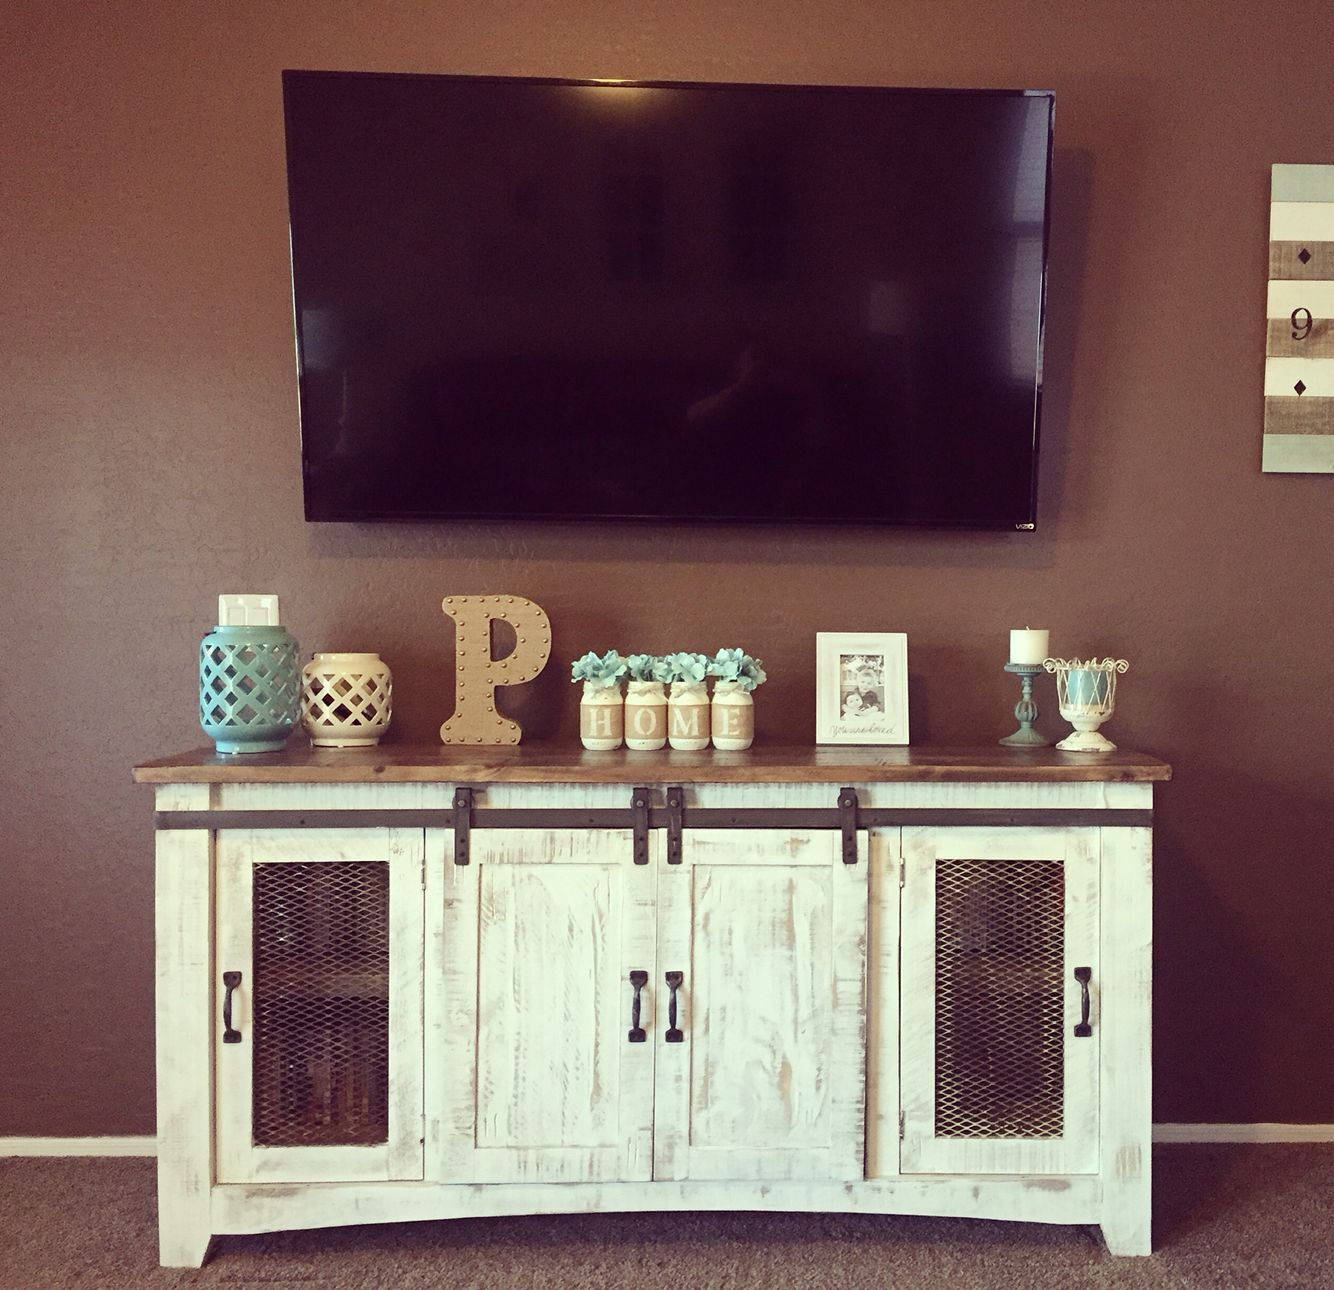 17 Diy Entertainment Center Ideas And Designs For Your New within measurements 1334 X 1290